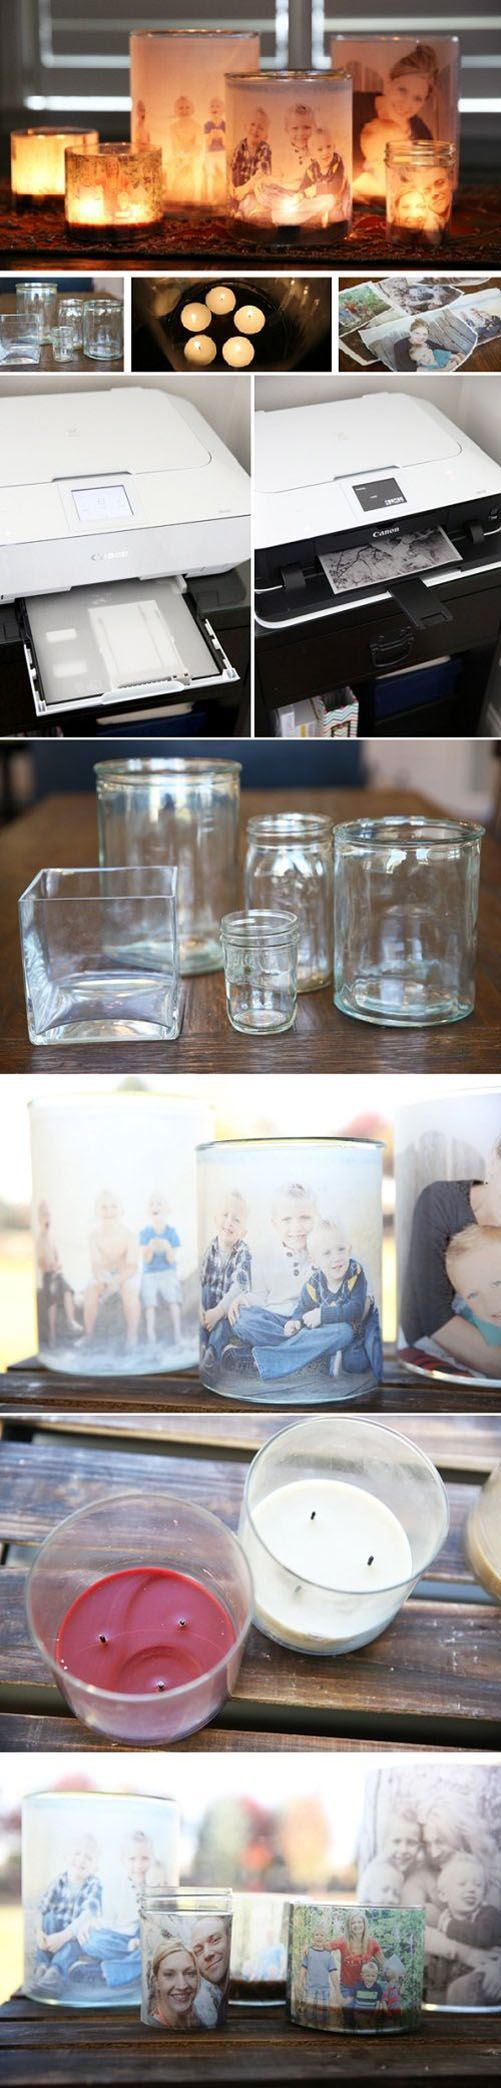 16 DIY Glowing Photo Luminaries d2e0c03 | DIY